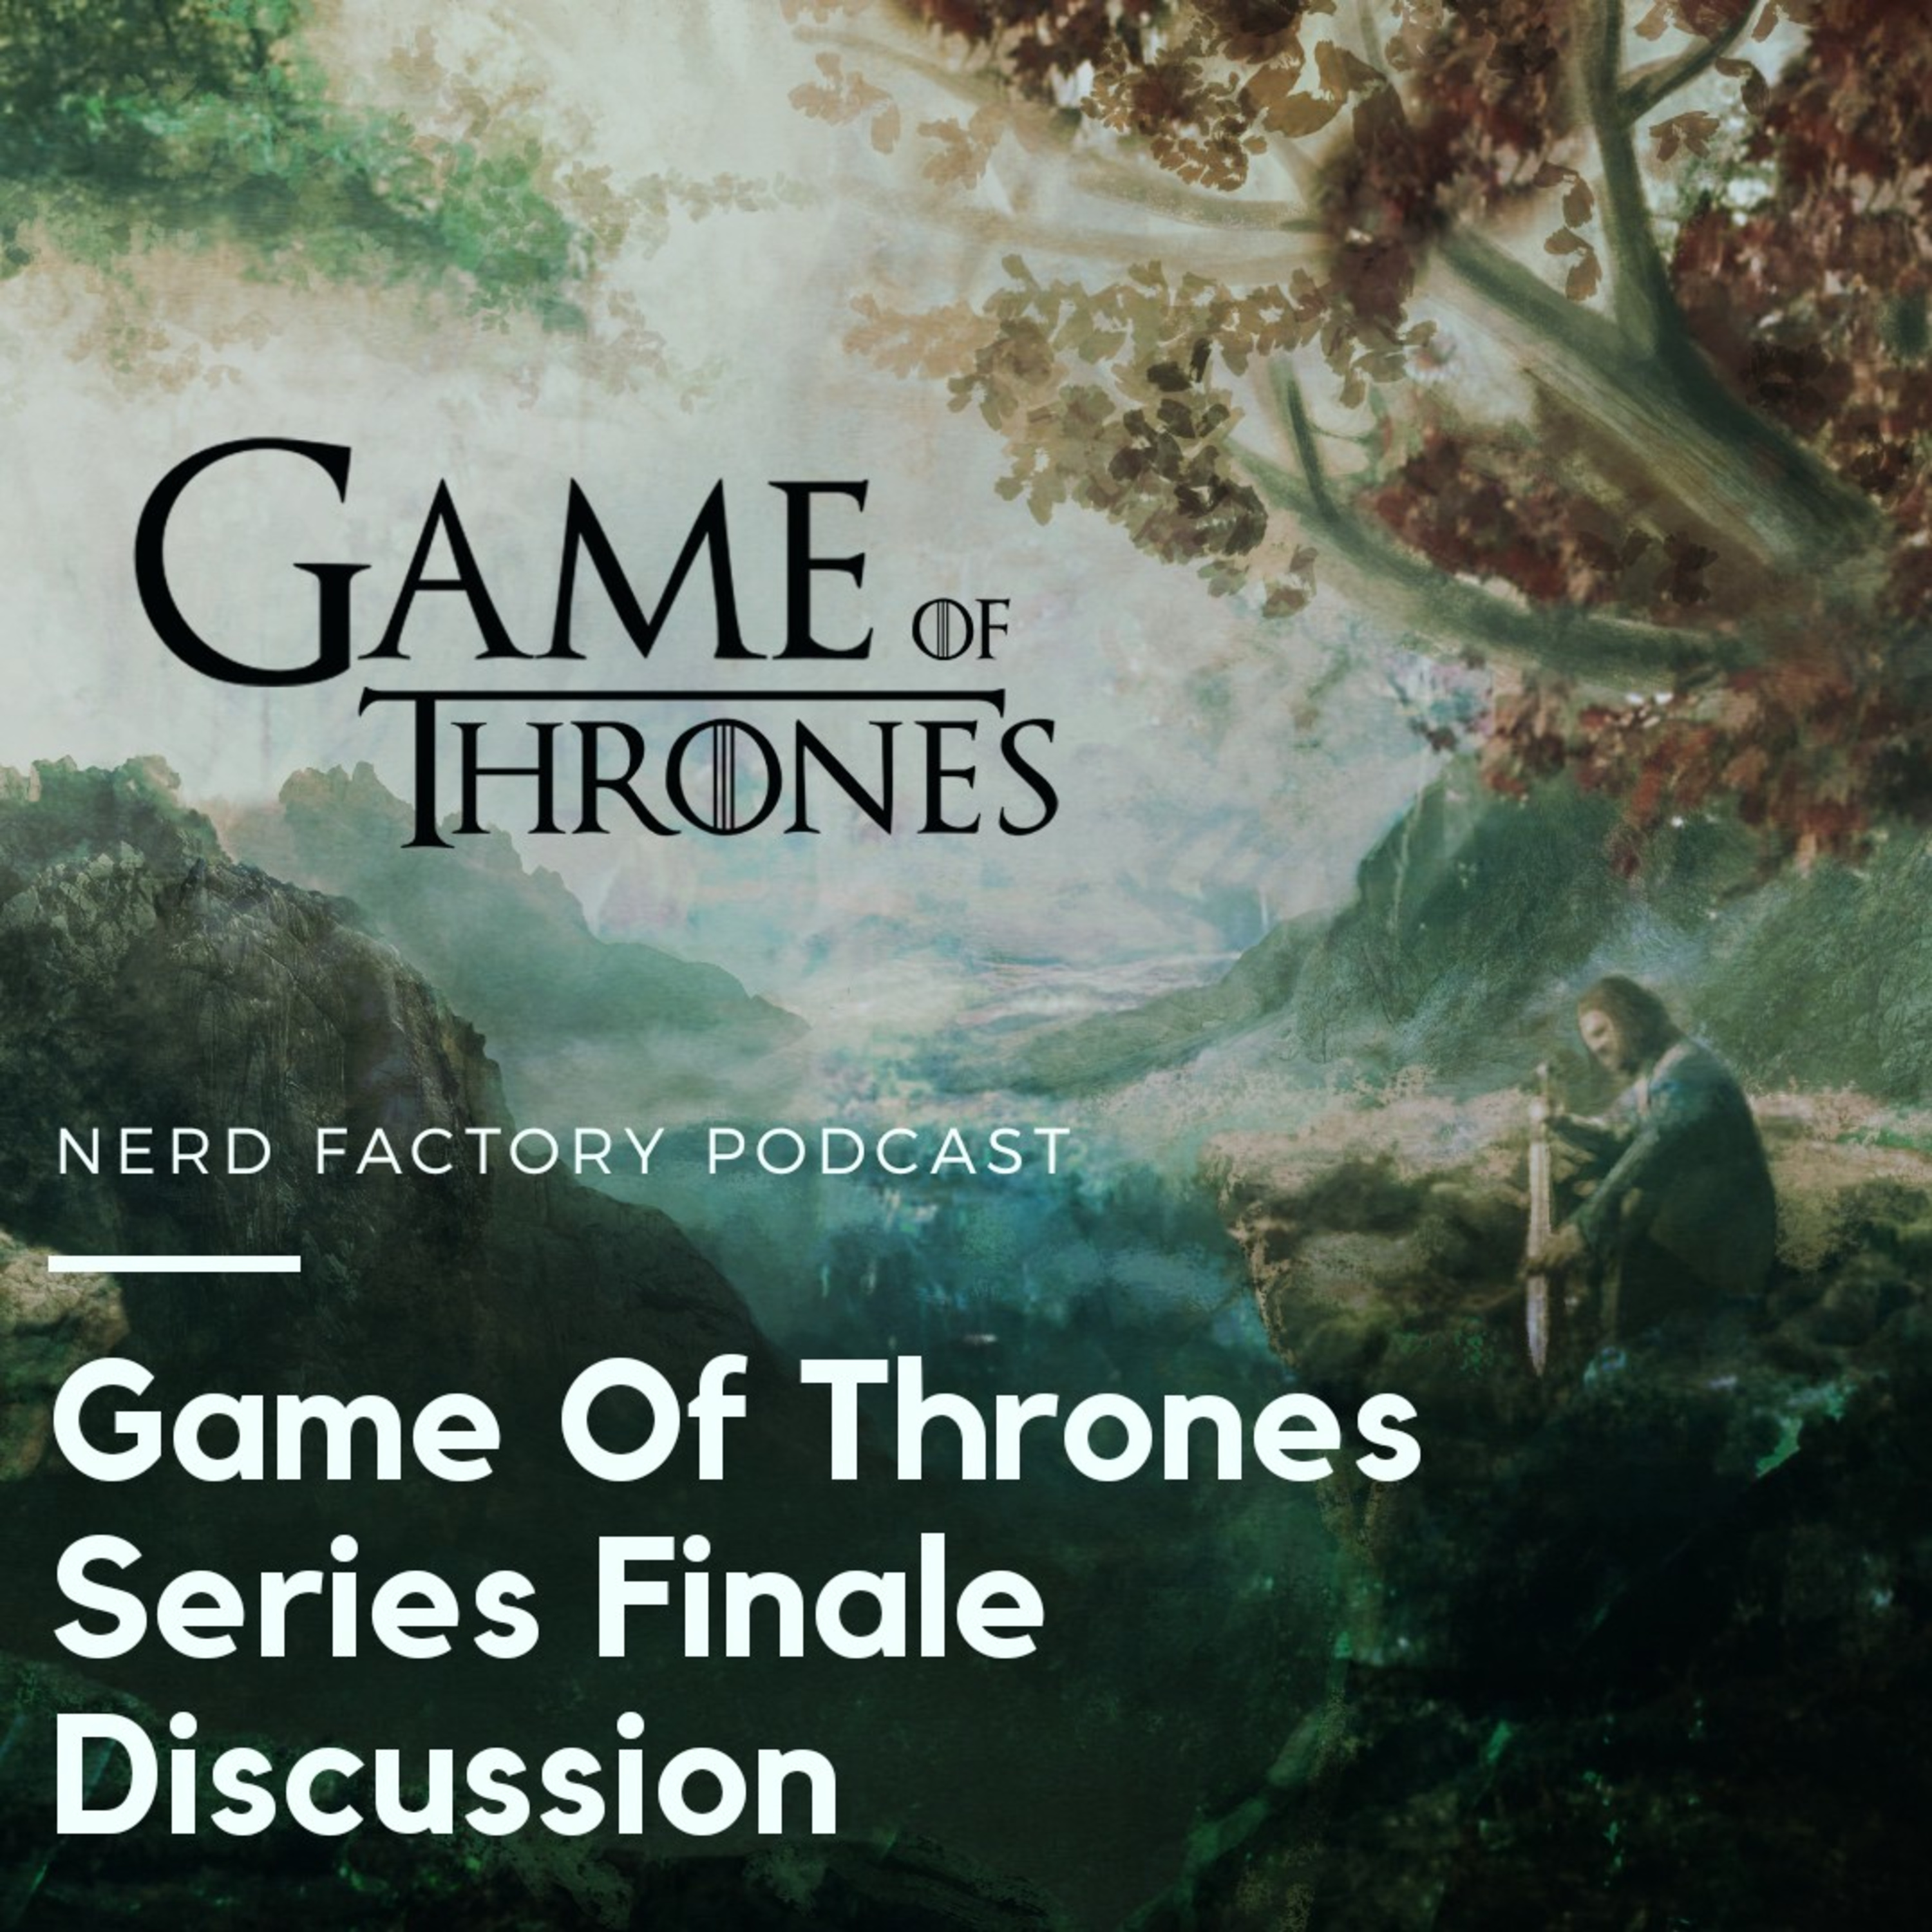 Game Of Thrones Series Finale Discussion